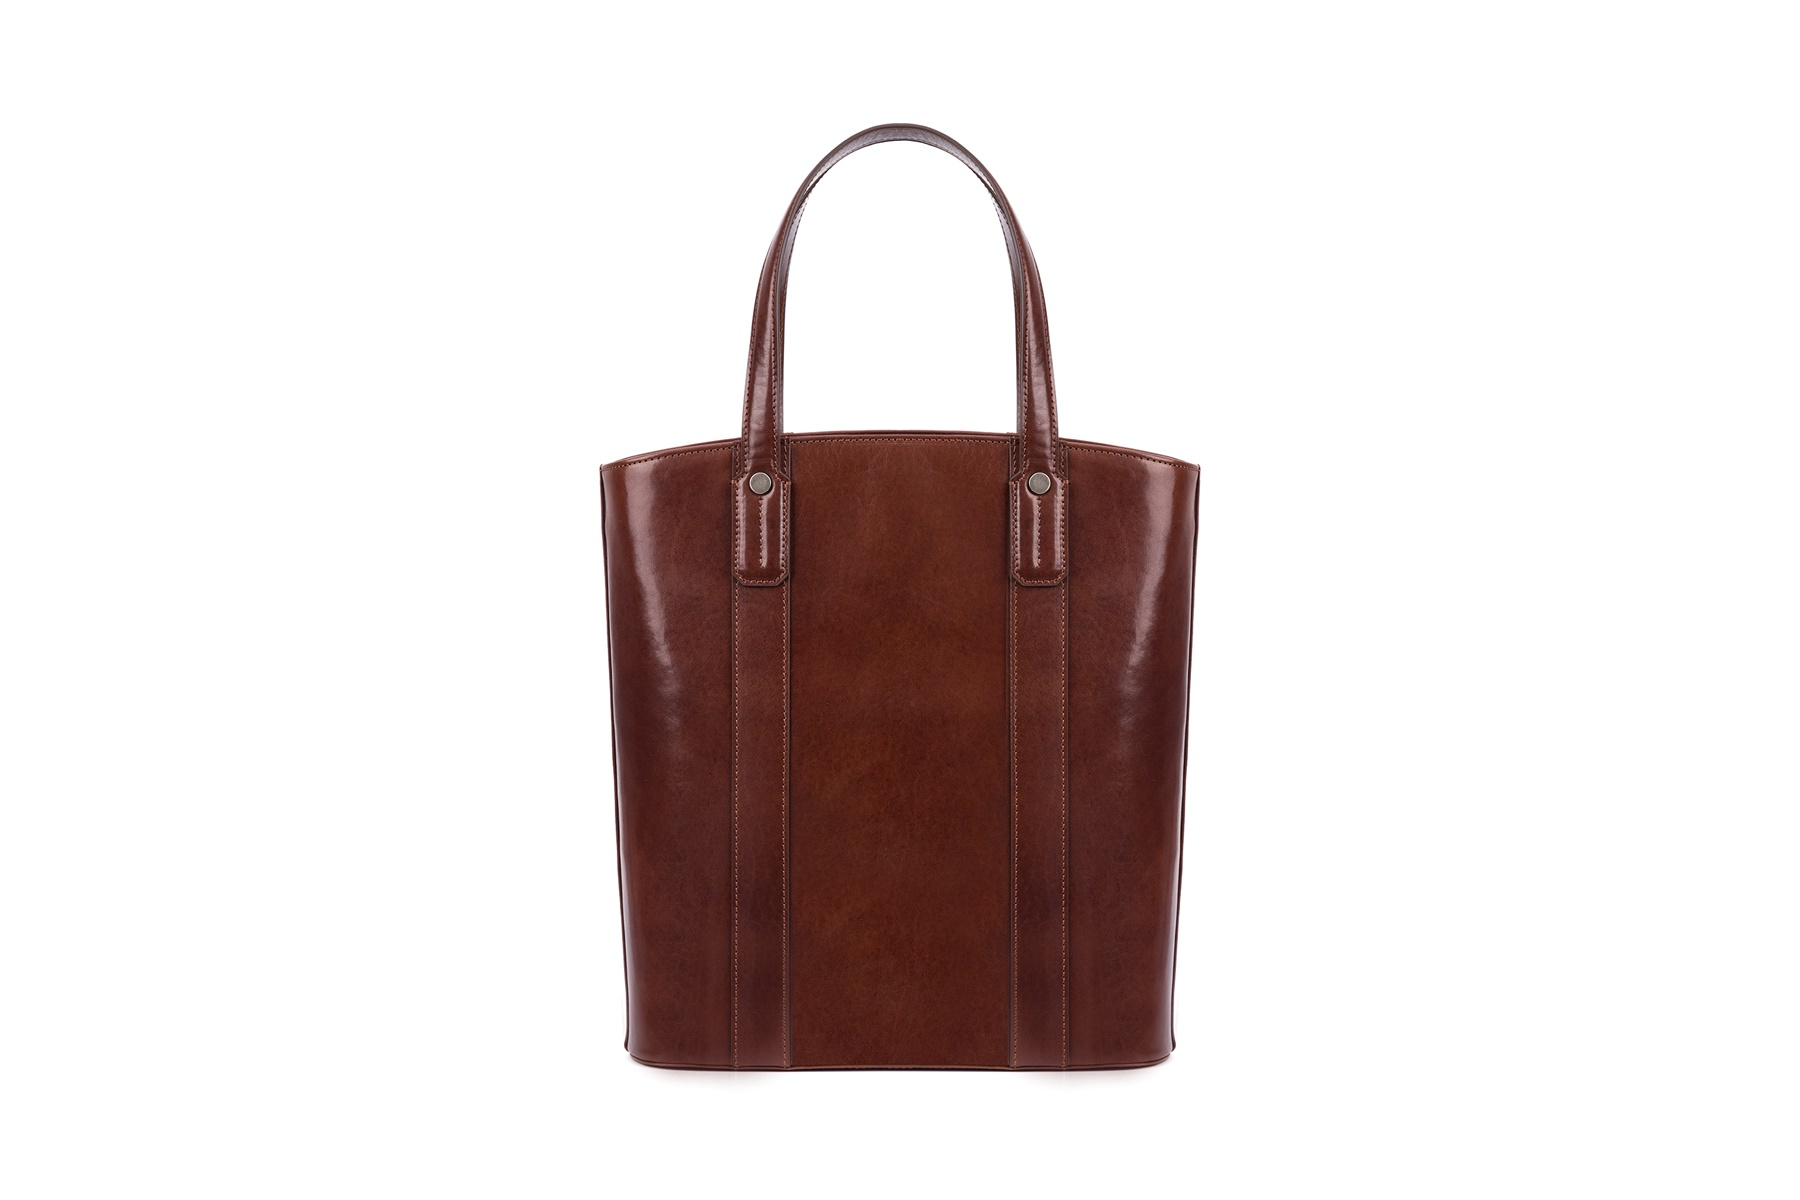 GF bags-Womens Work Tote Tote Leather Handle With Zipper Closure-6